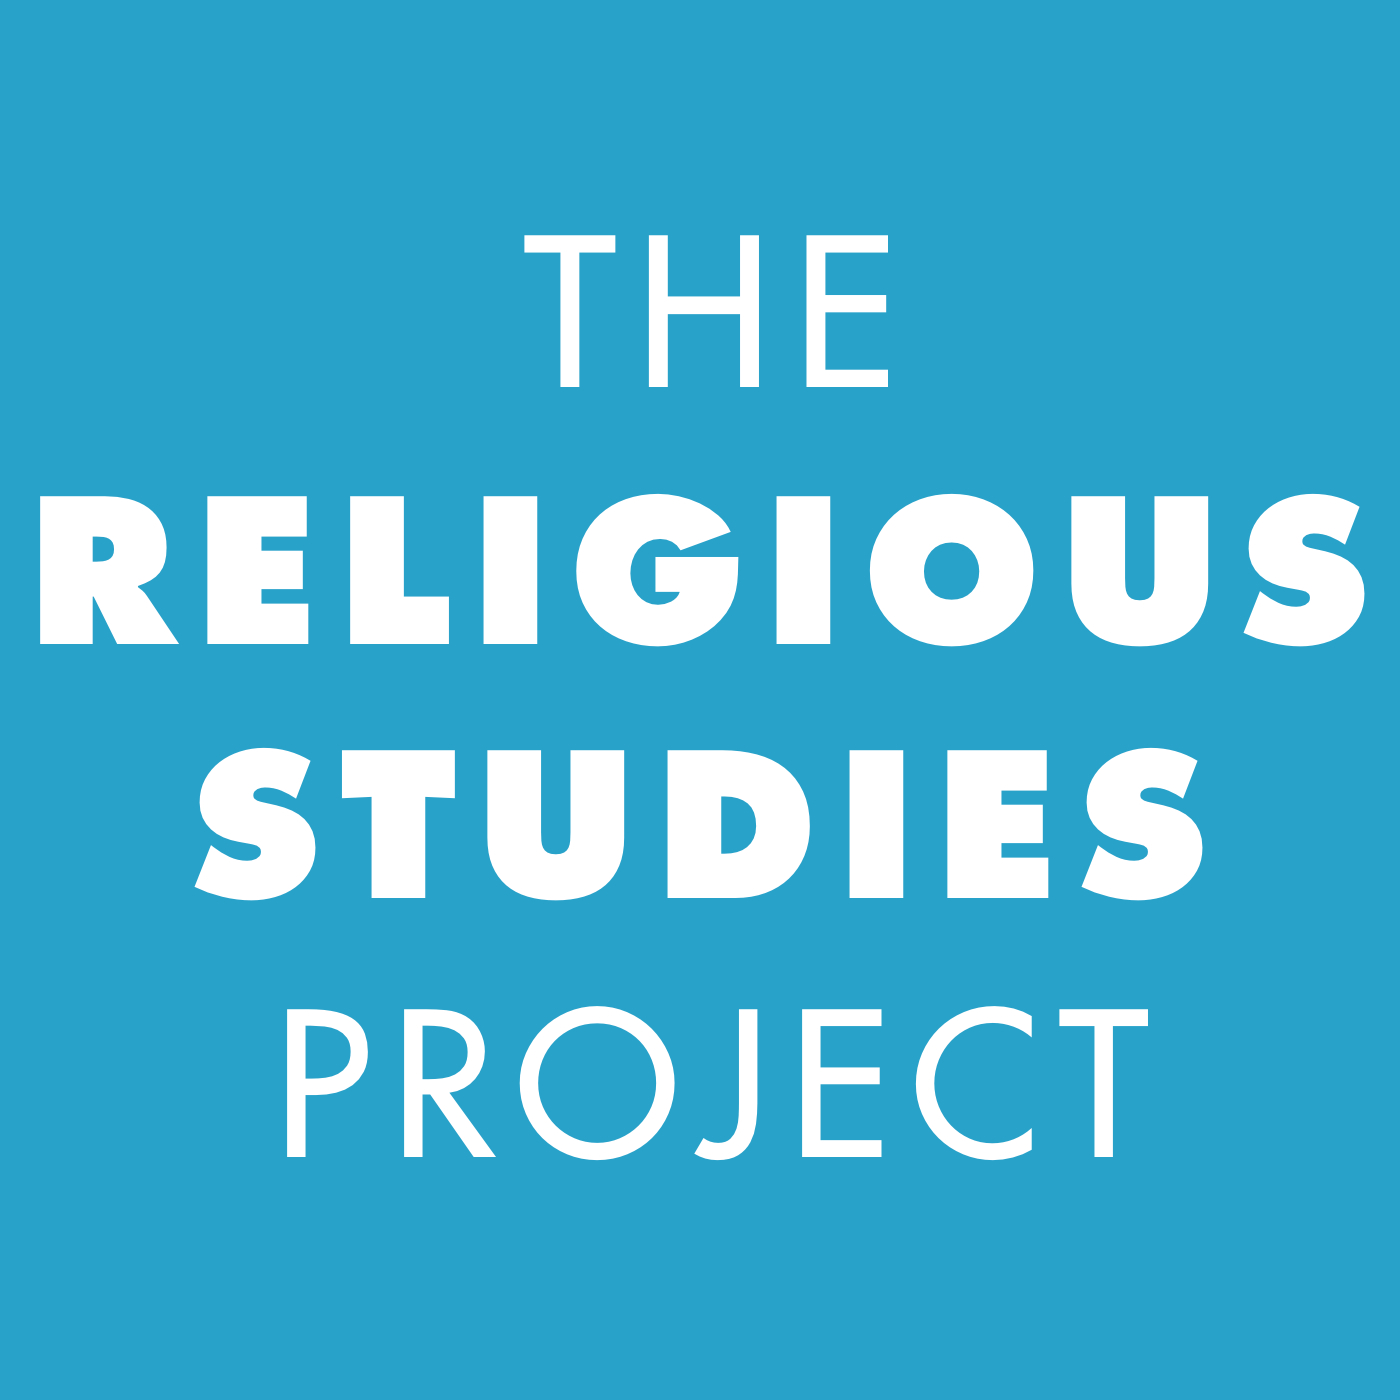 a study on religion and the Whether you consider yourself a religious person or not, or whether you think religion has played a positive or negative role in history, it is an incontrovertible.